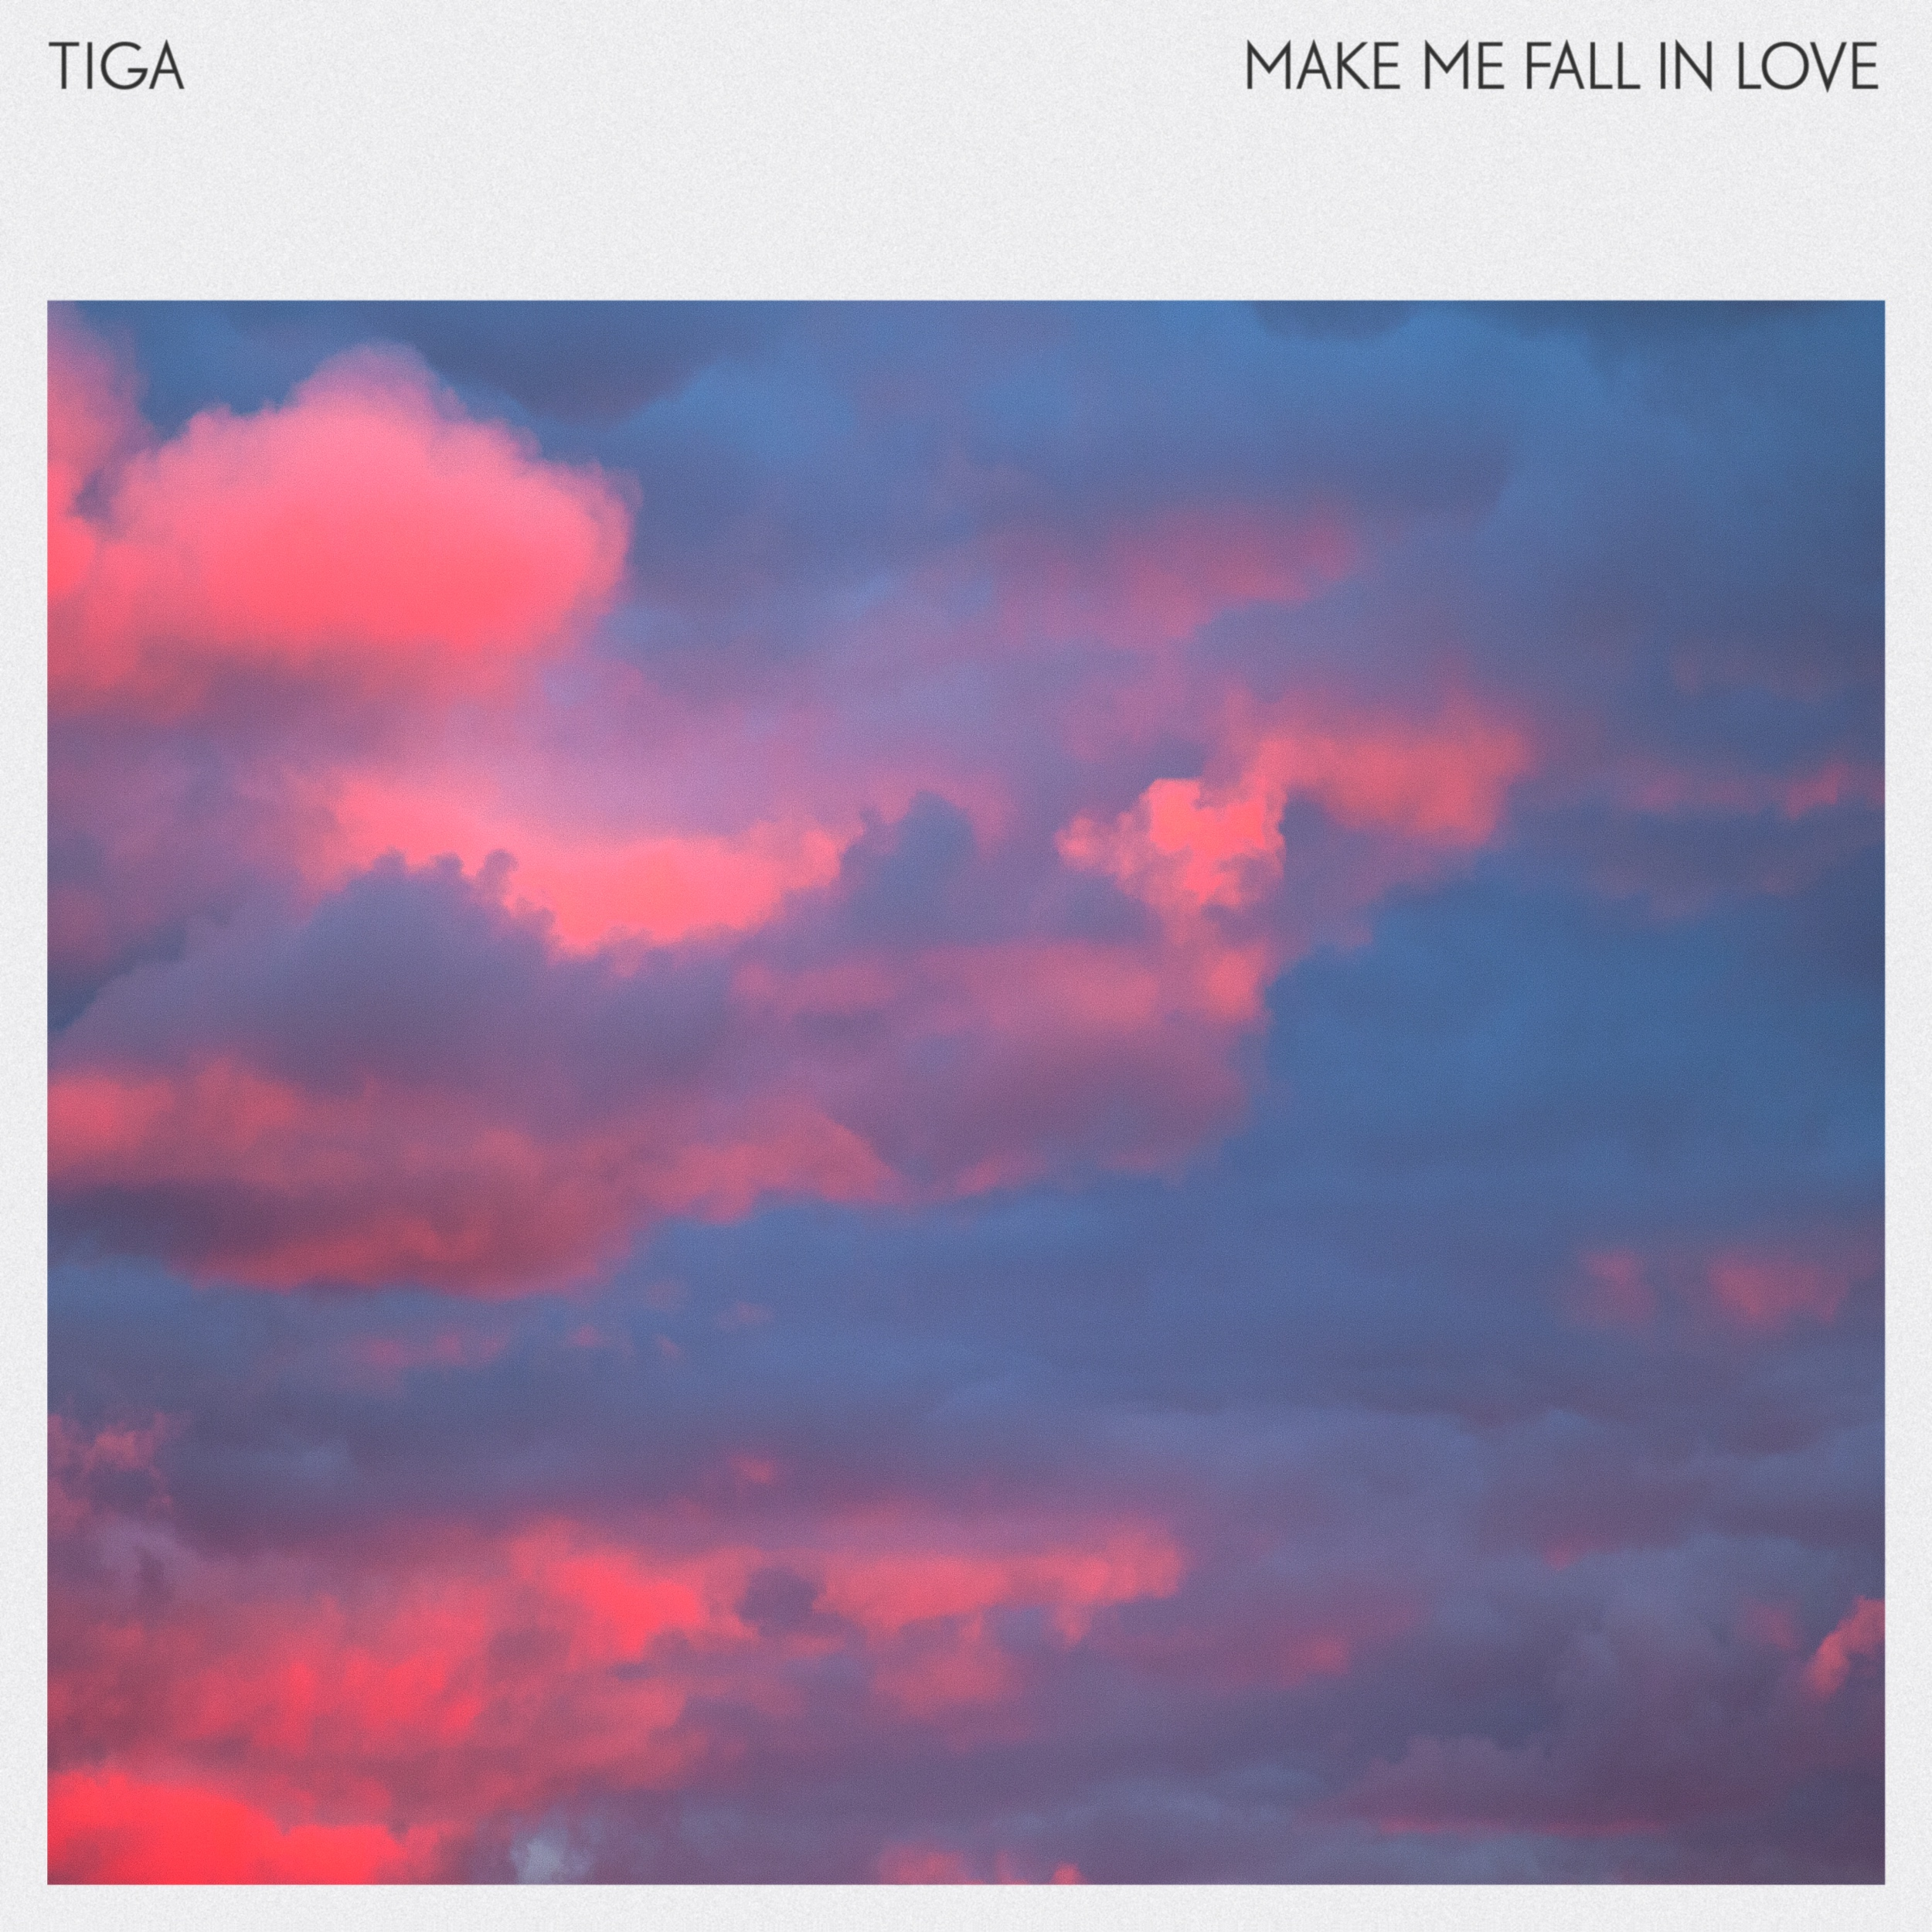 Tiga – Make Me Fall In Love (Edu Imbernon Remix) [Turbo]